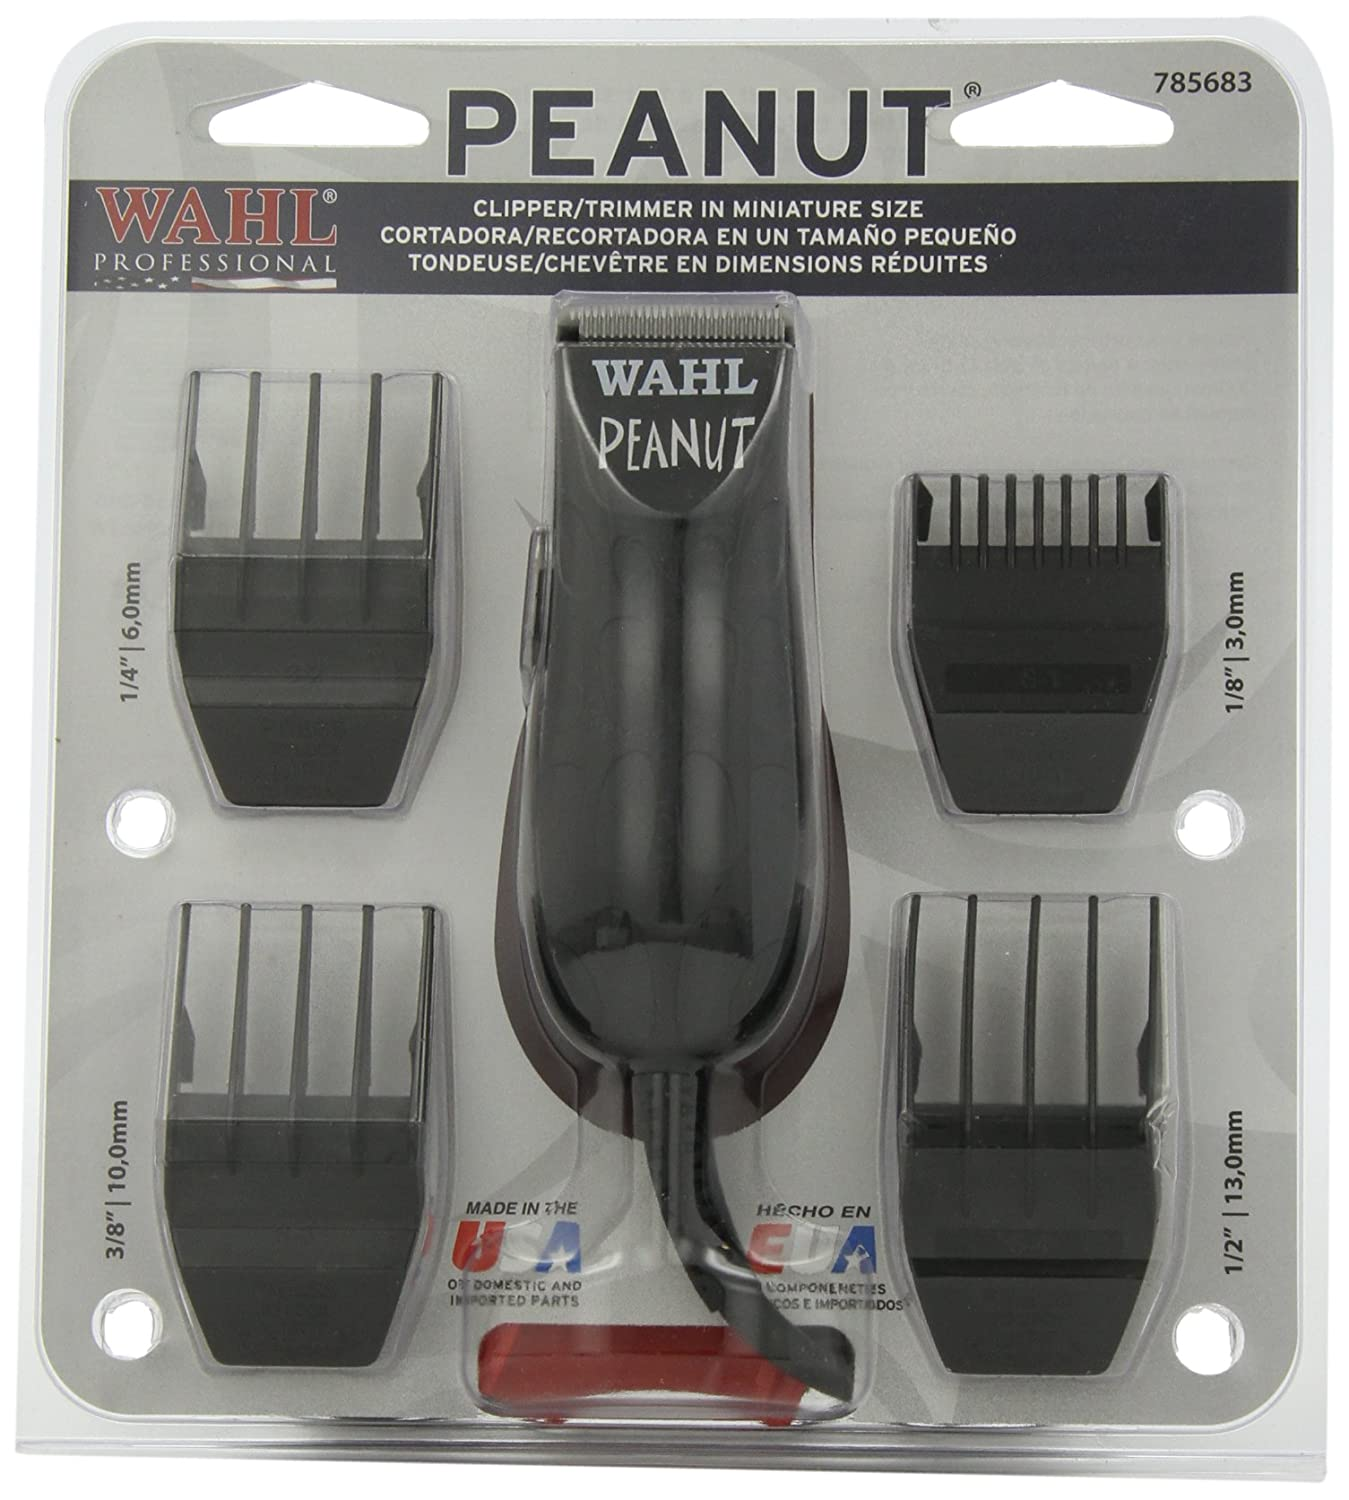 Wahl Professional 8655-200 Peanut Clipper/trimmer, Black